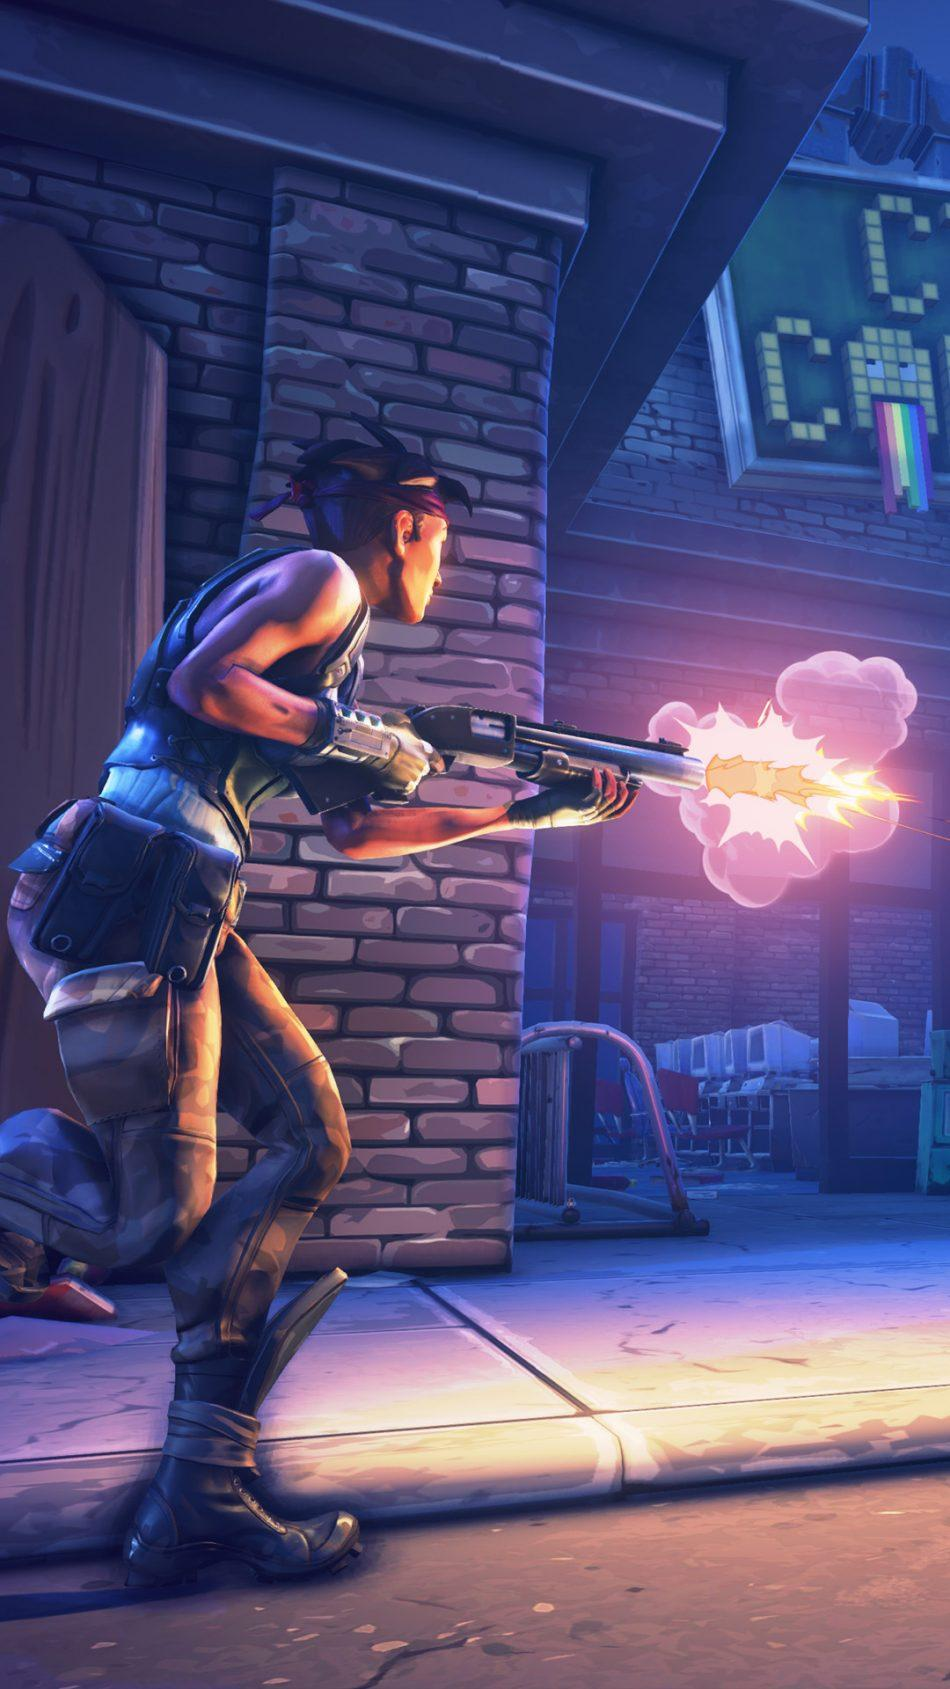 Fortnite Battle Royale Shooting Free 4K Ultra HD Mobile Wallpapers